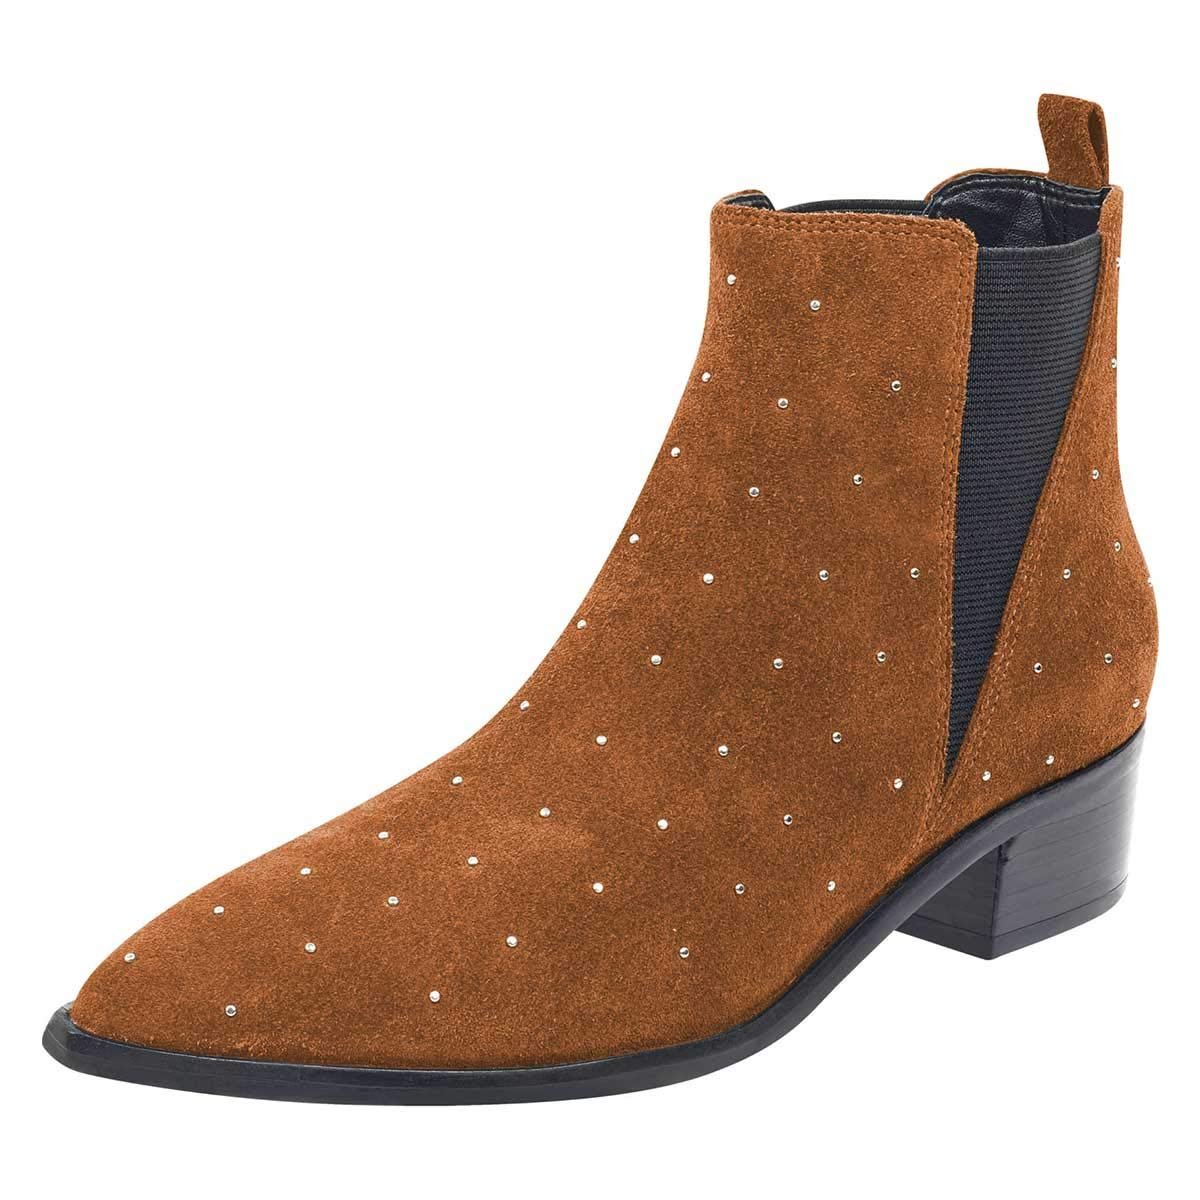 Brown FSJ Women Pointed Toe Studded Chelsea Boots Block Low Heels Comfortable Suede Ankle Booties Size 4-15 US